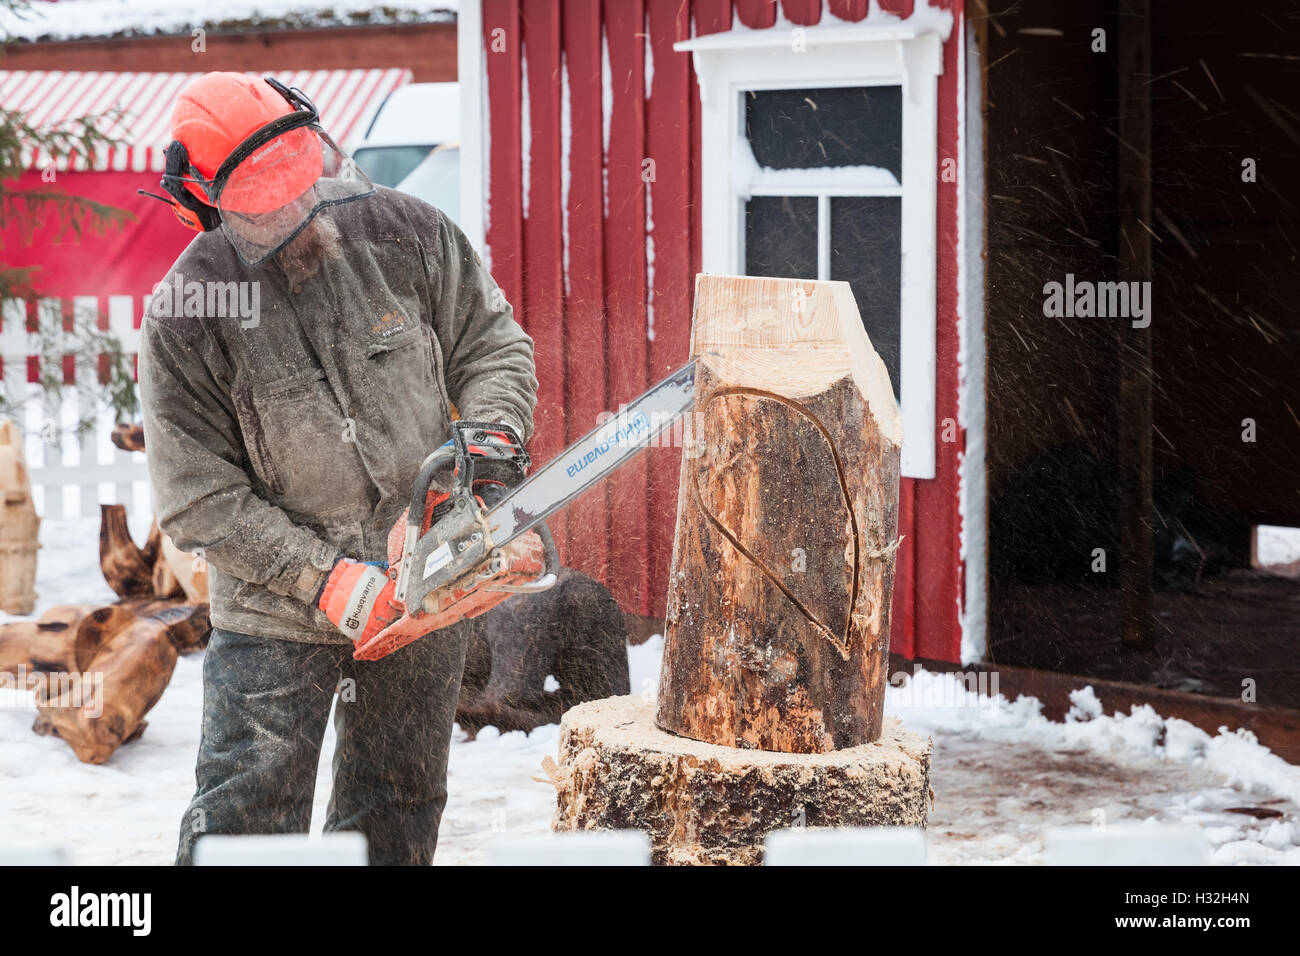 Hamina, Finland - December 13, 2014: Finnish sculptor with a chainsaw produces wooden sculpture - Stock Image